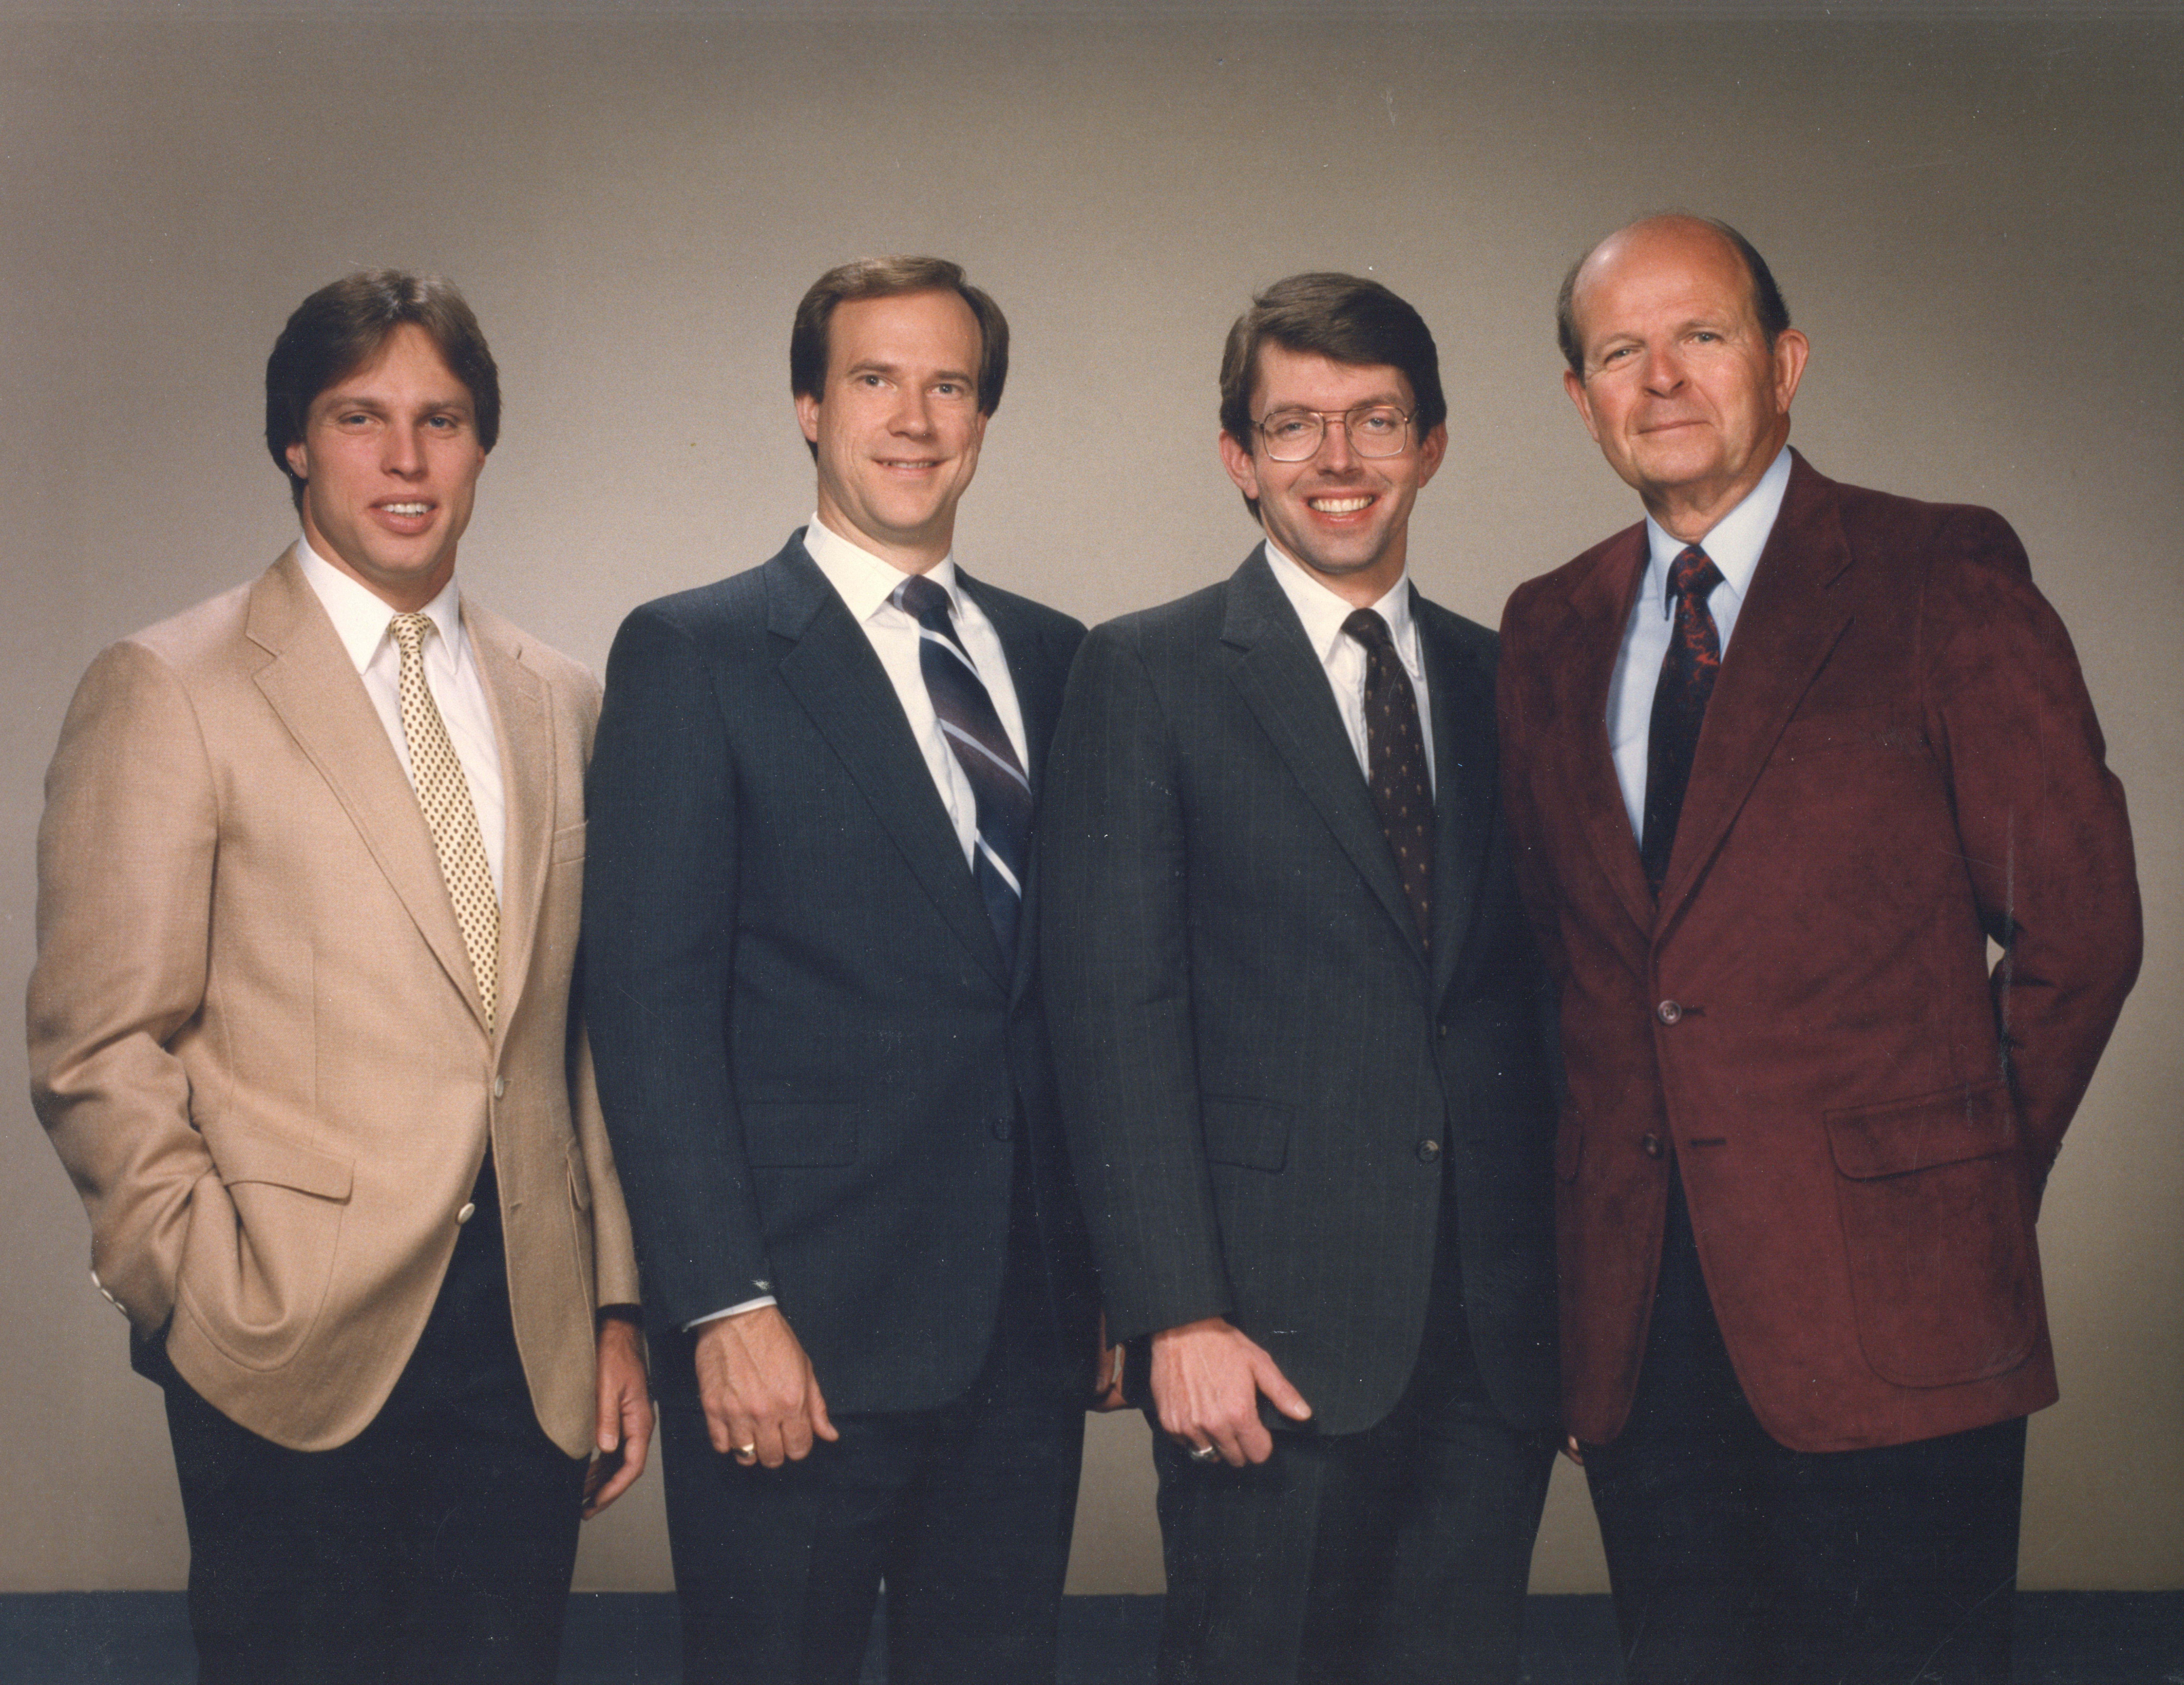 WRAL Weather team in 1980s | CBC History